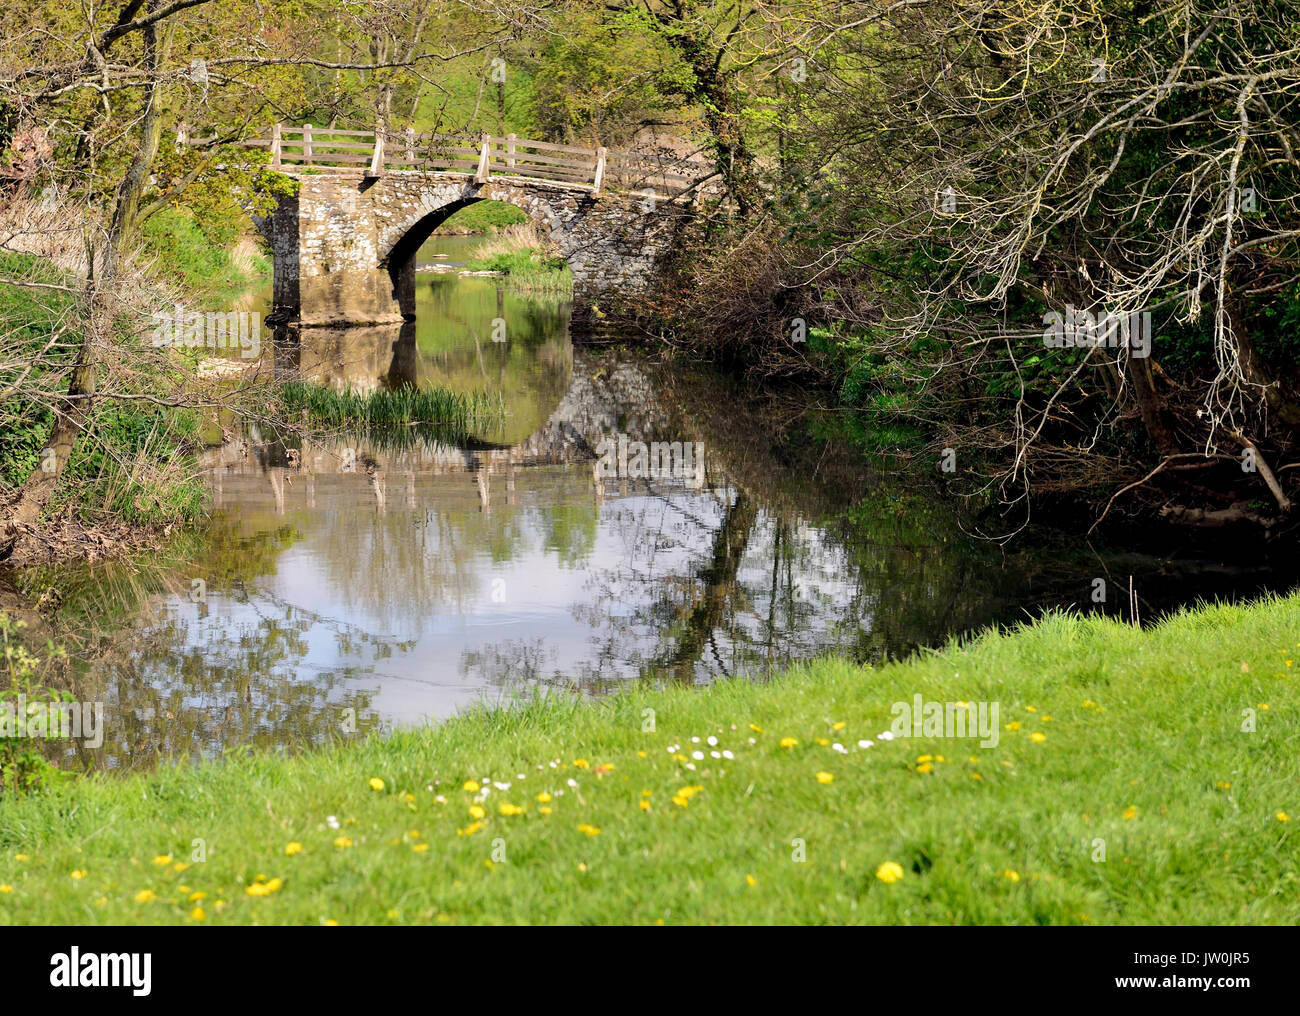 The packhorse bridge over the river Frome at Tellisford spans the county boundary between Wiltshire and Somerset. Stock Photo